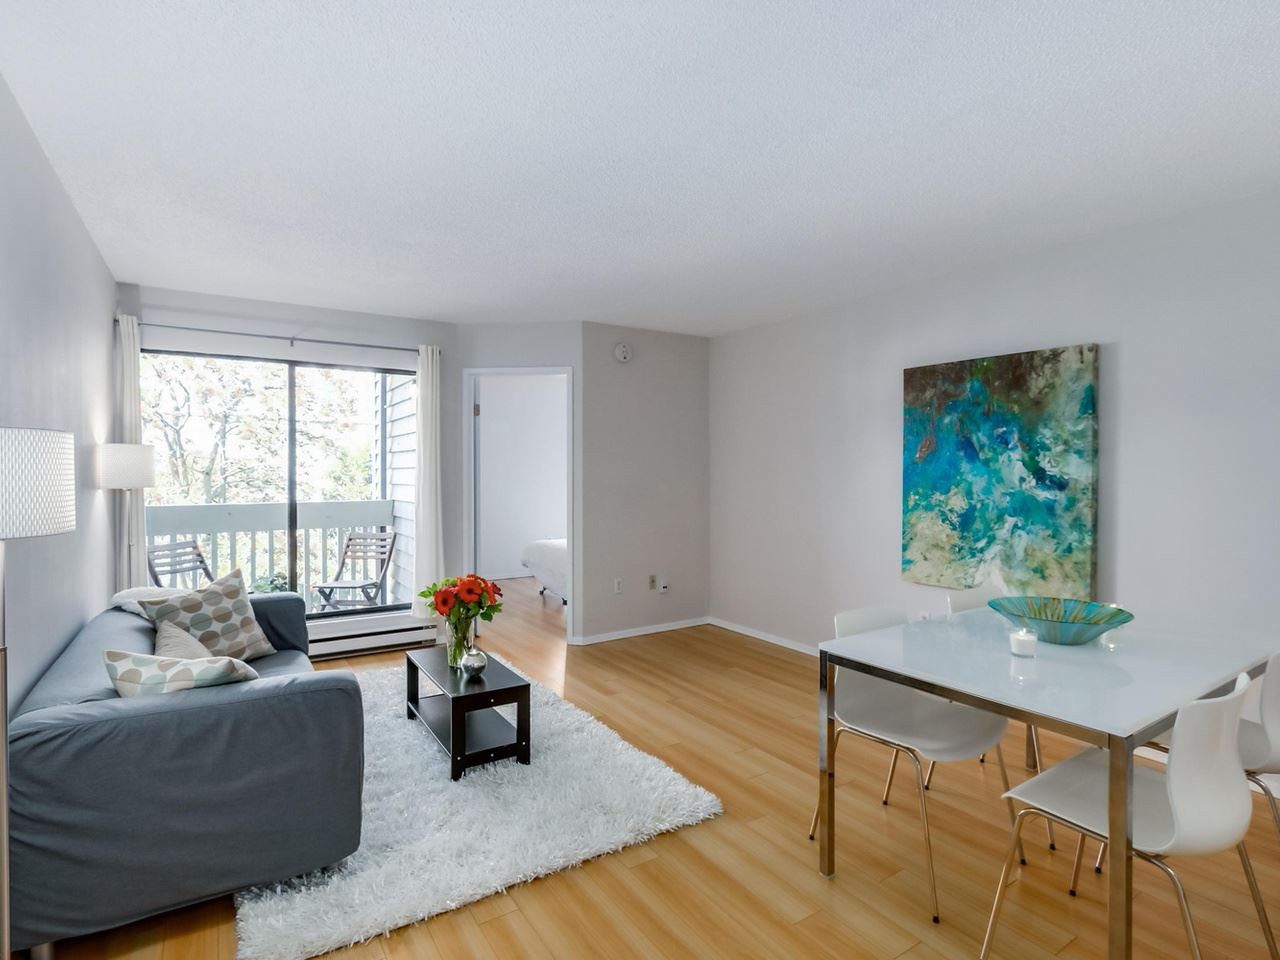 """Photo 5: Photos: 207 1545 E 2ND Avenue in Vancouver: Grandview VE Condo for sale in """"TALISHAN WOODS"""" (Vancouver East)  : MLS®# R2086466"""